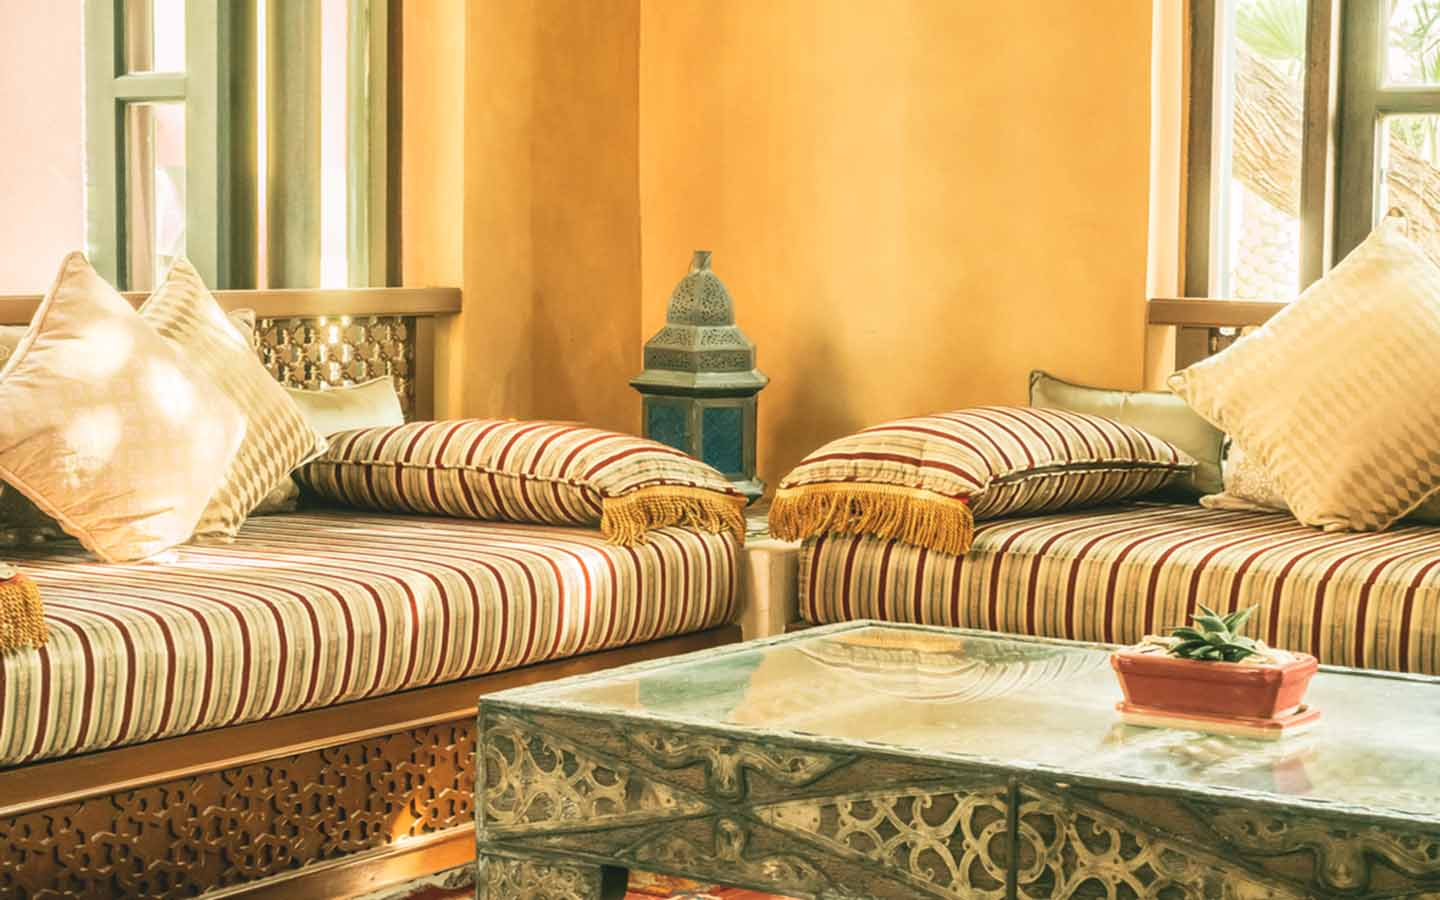 Majlis design ideas with traditional cushions